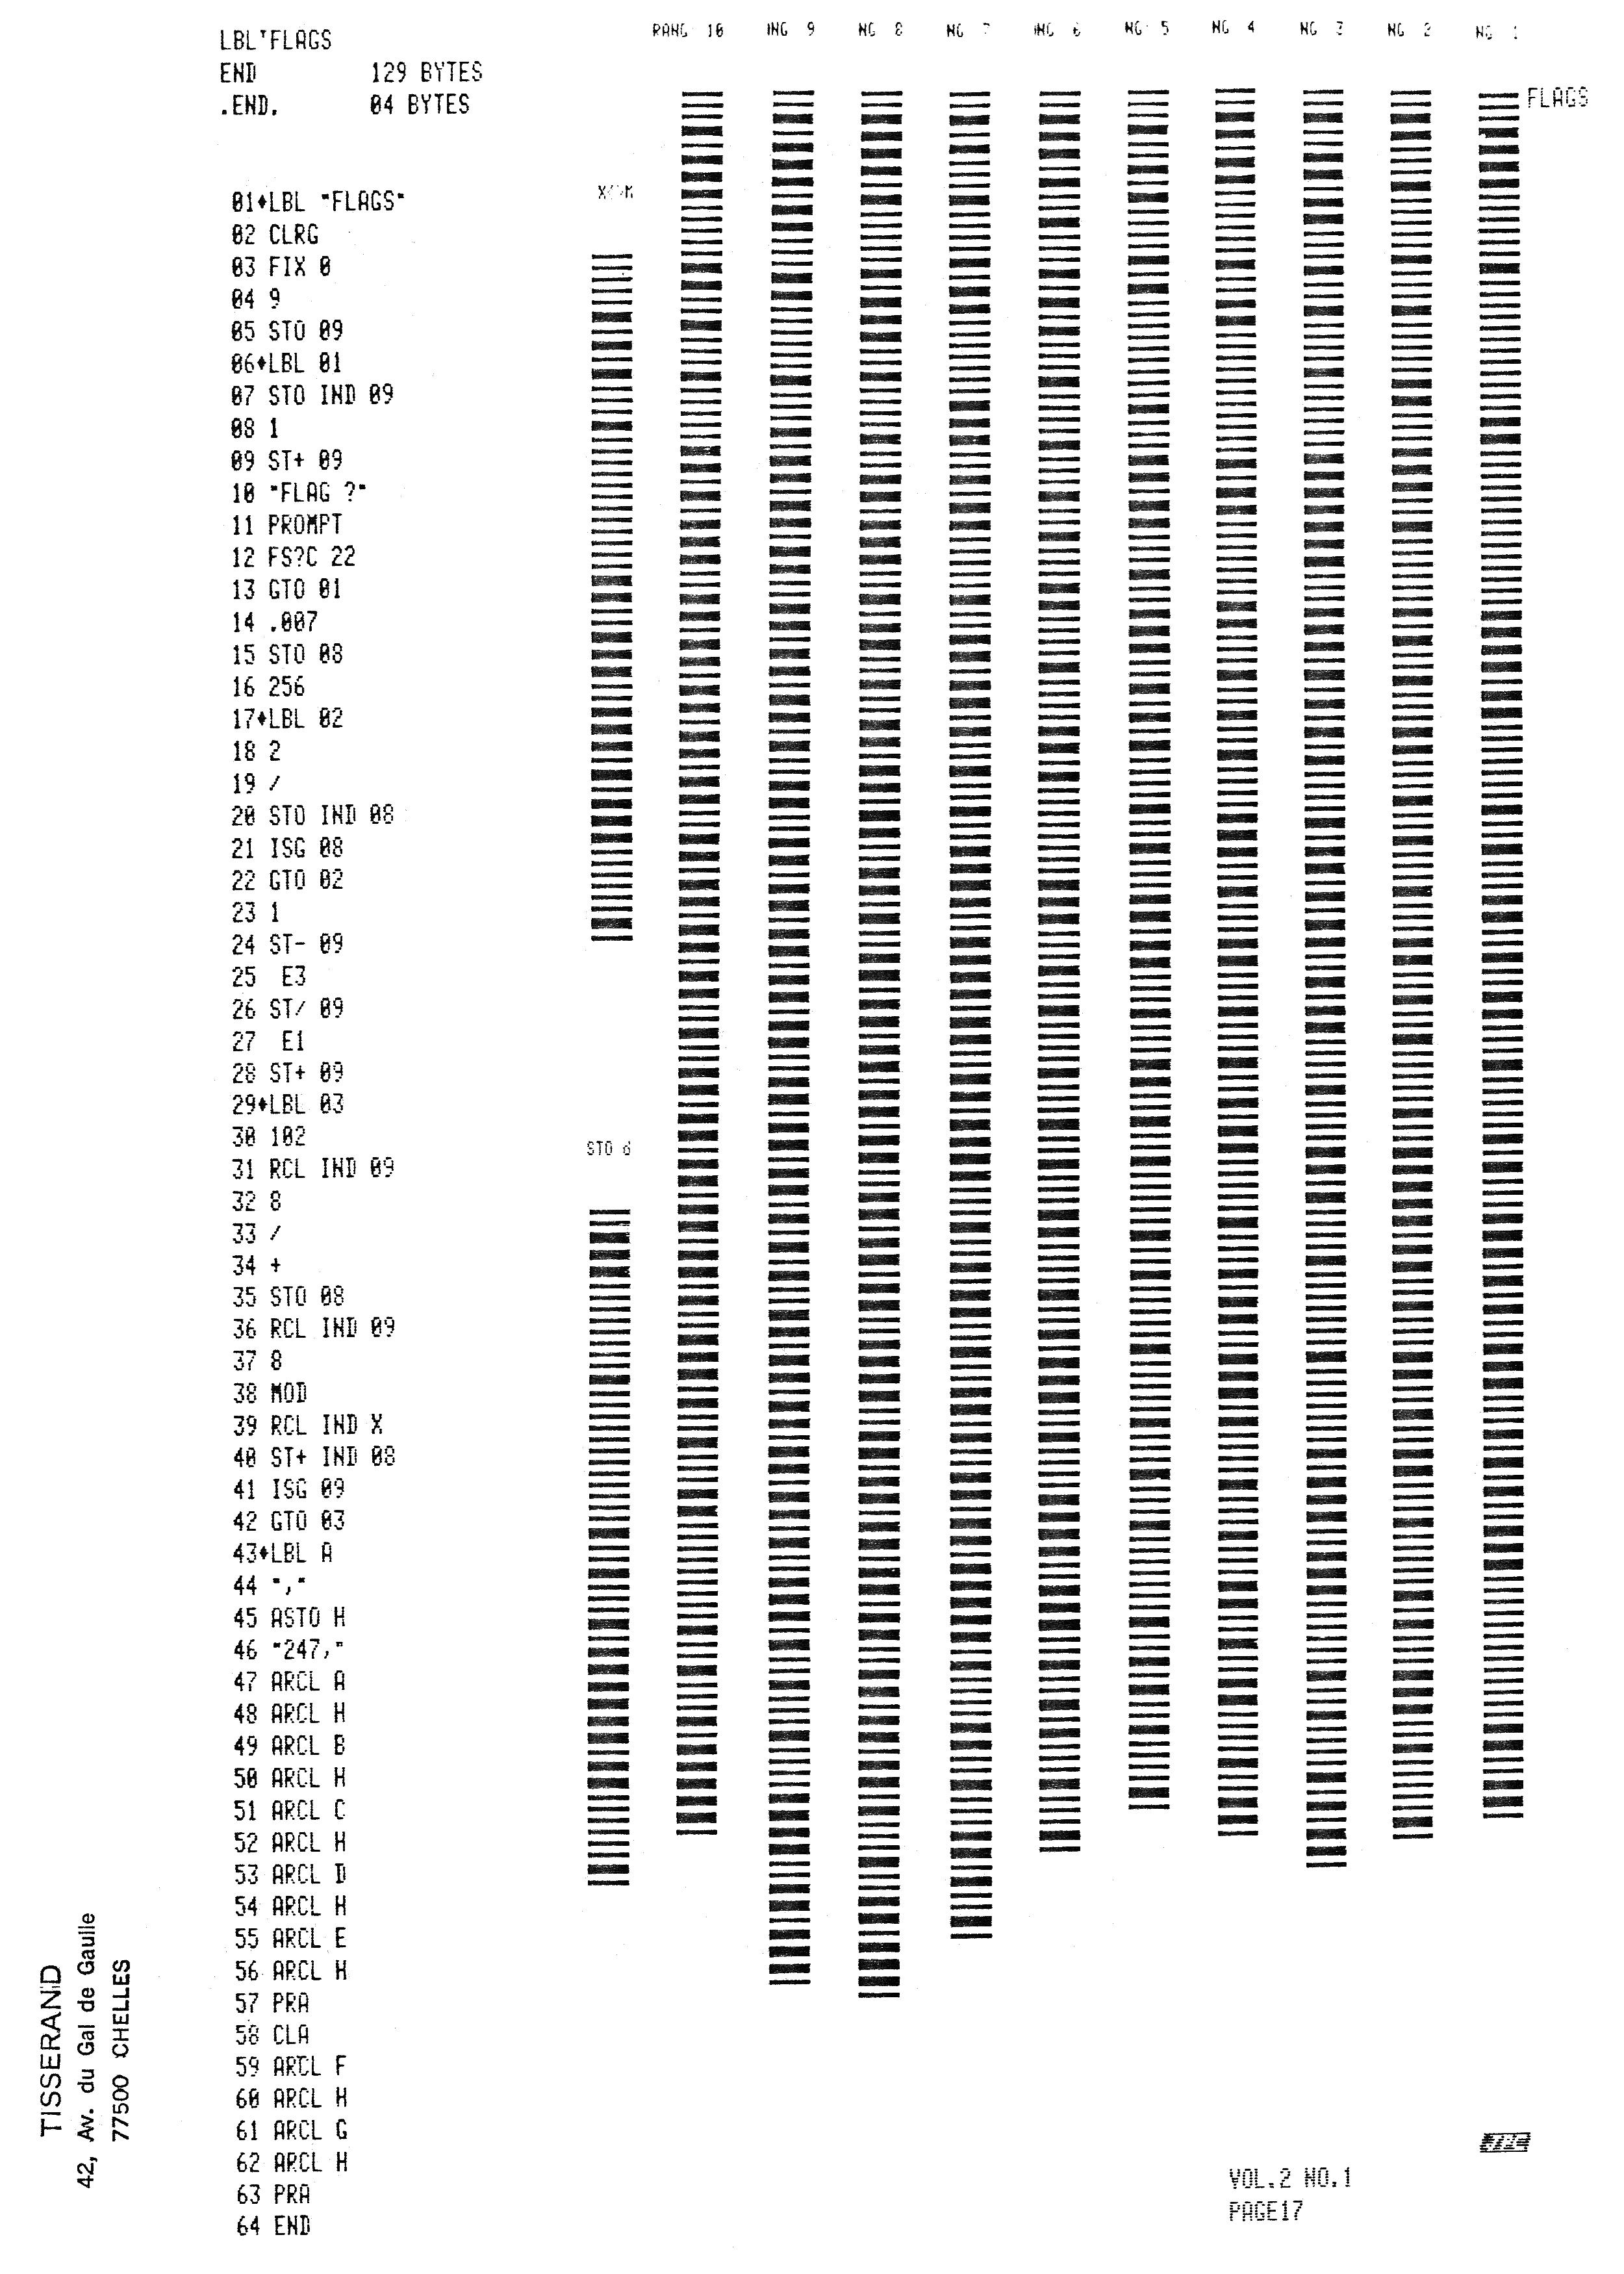 Jp-11-page-18-1000